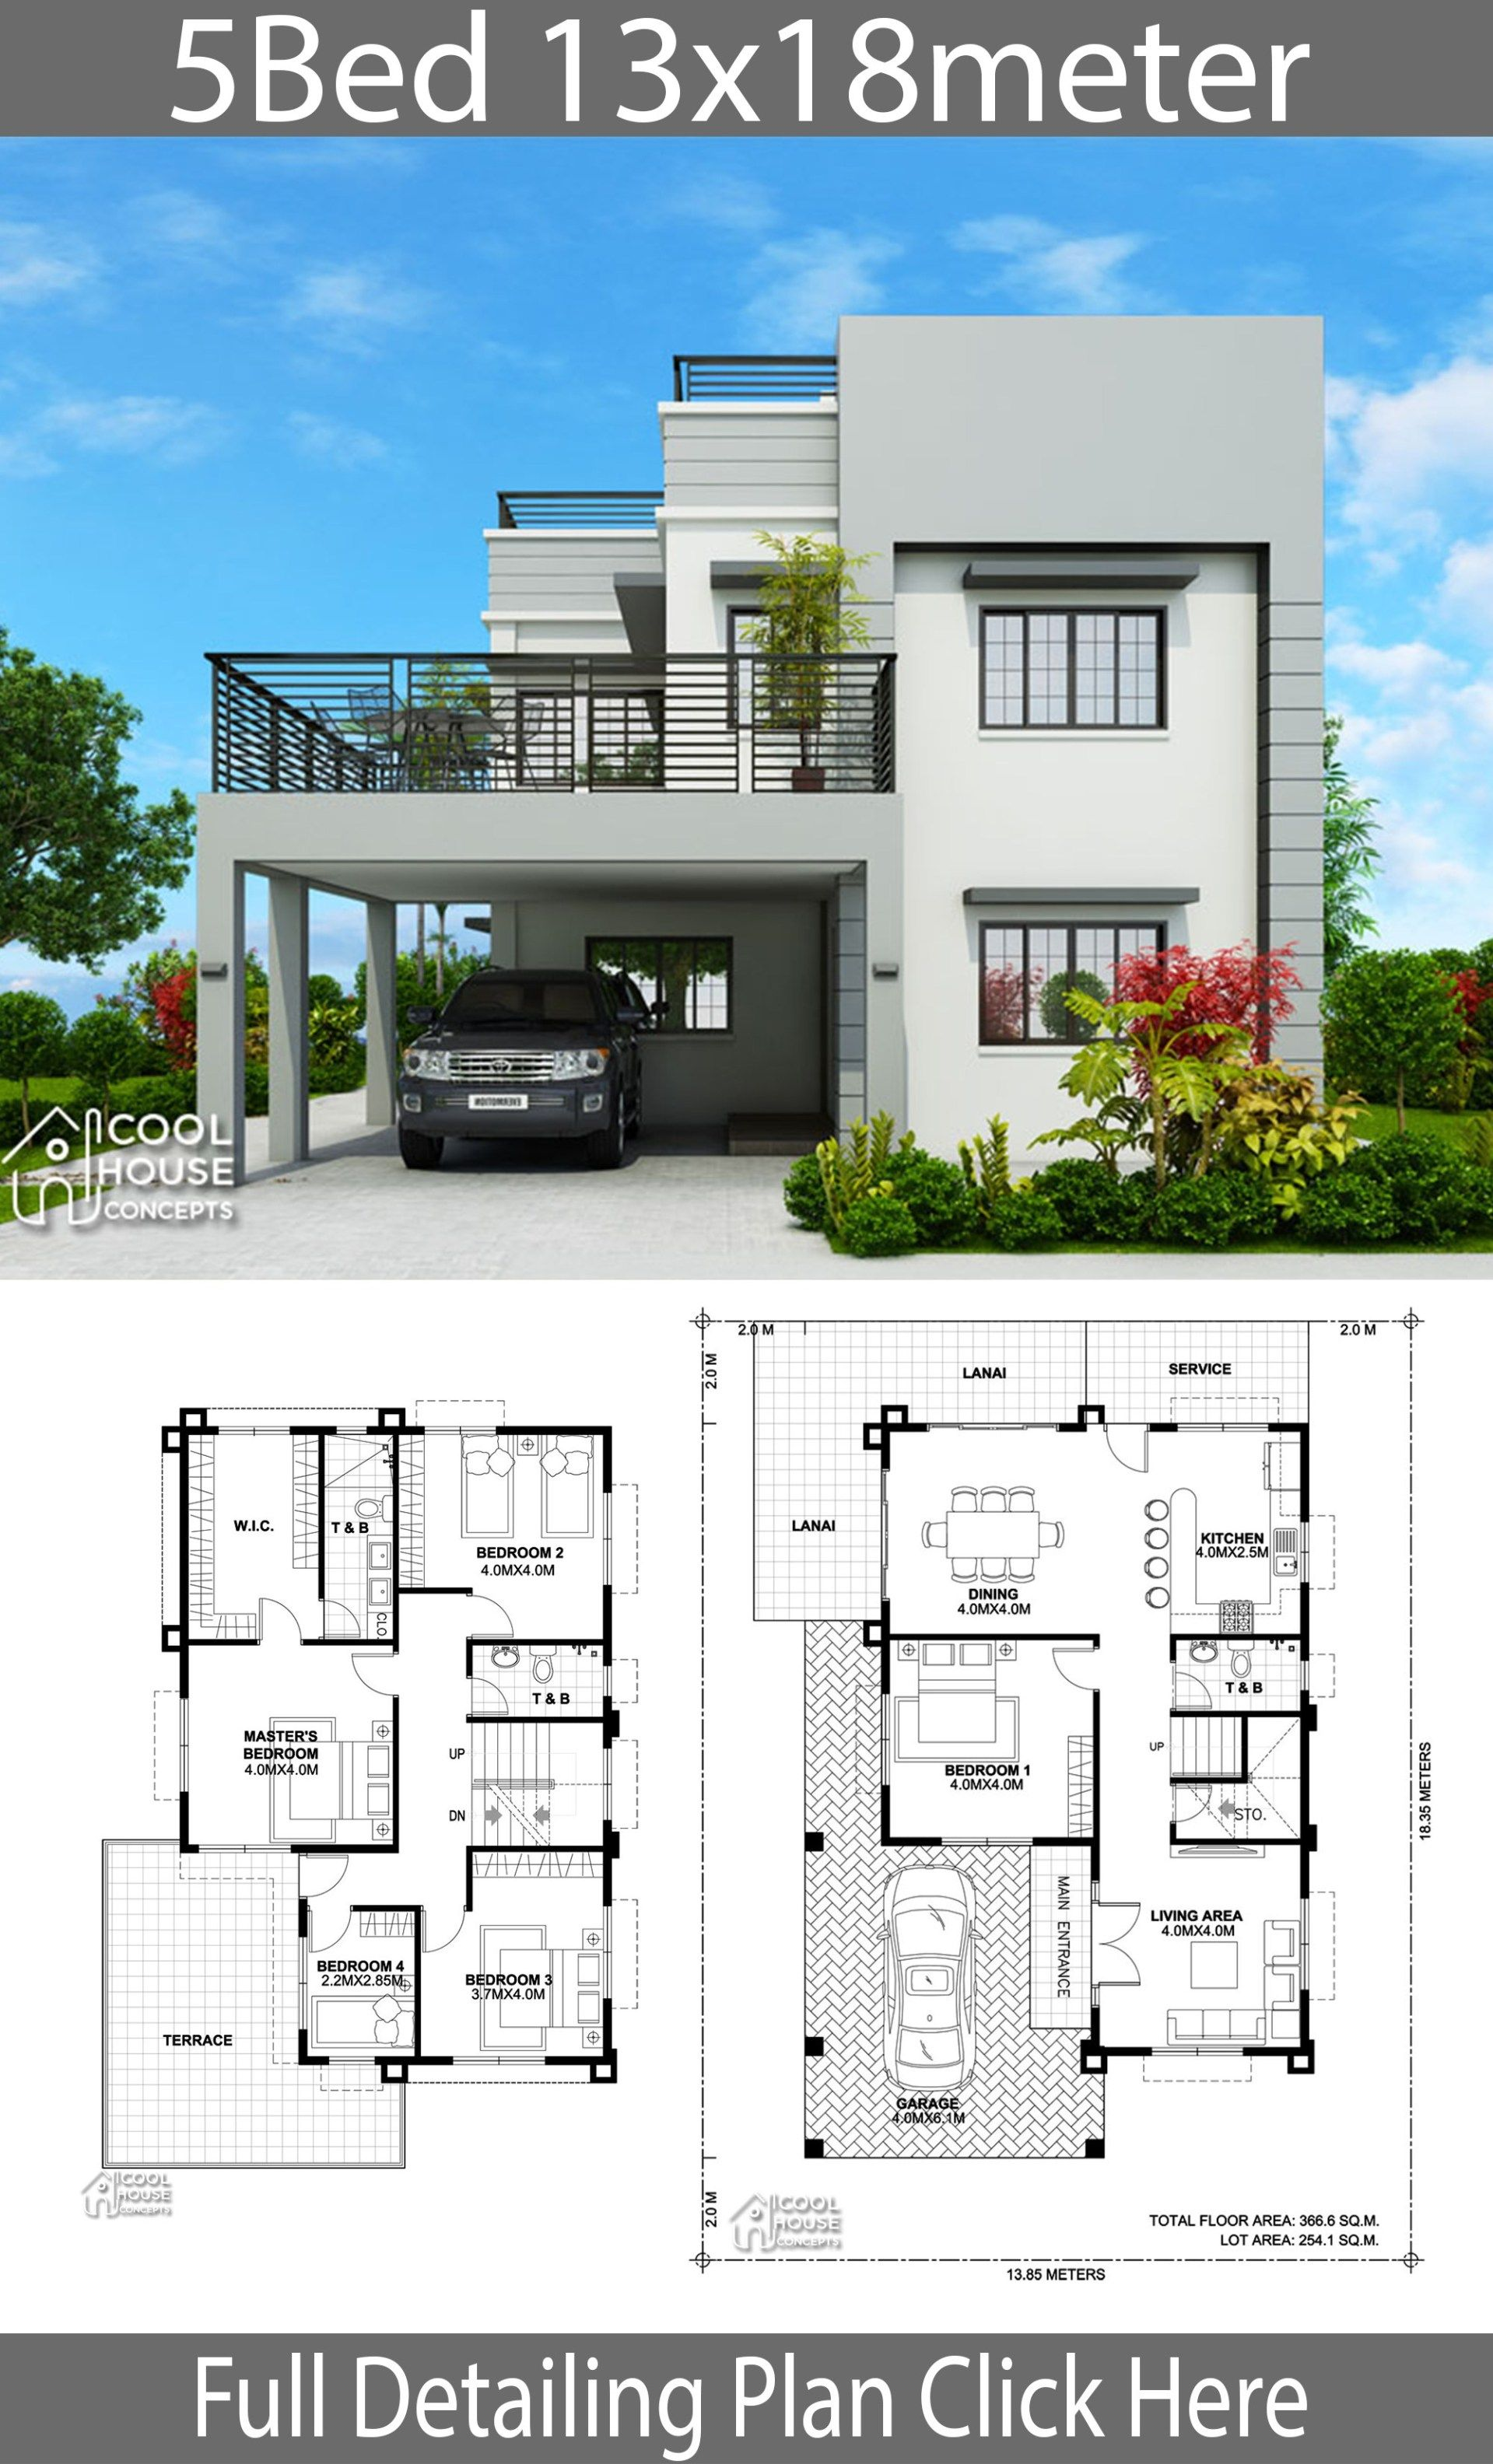 Home Design Plan 13x18m With 5 Bedrooms Home Ideas Duplex House Design House Layout Plans Duplex House Plans